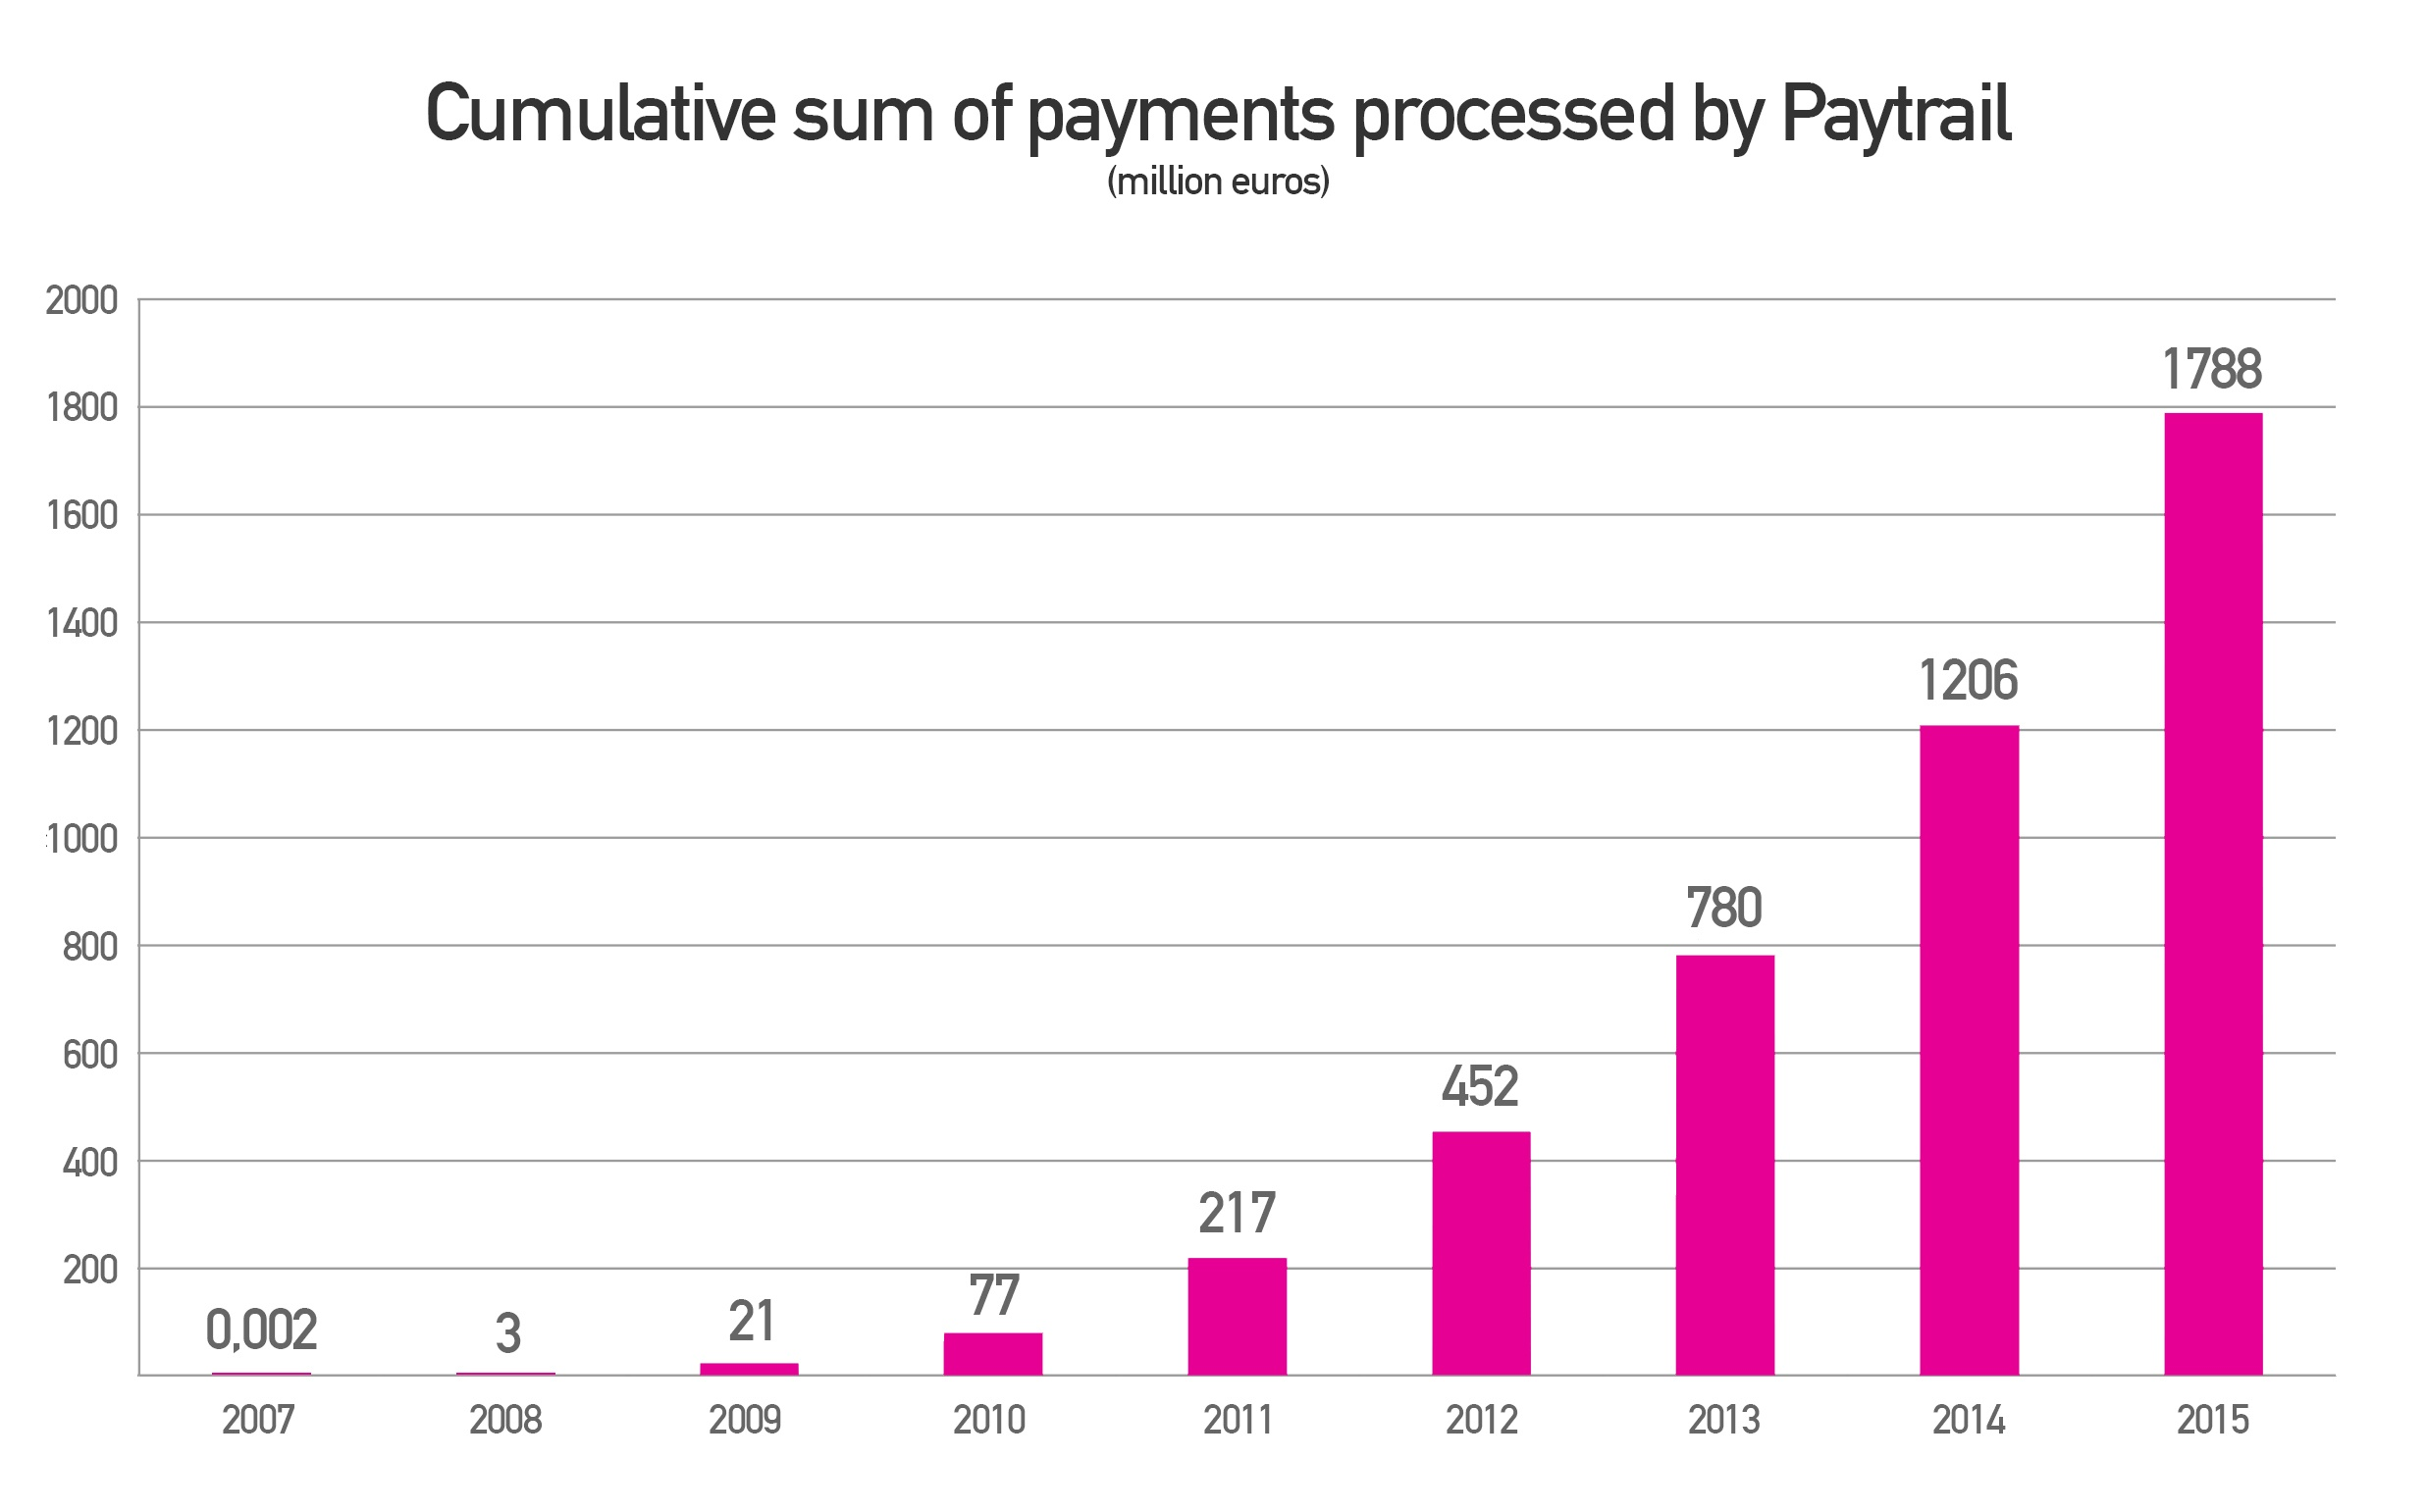 Press Release: Over 2 billion euros in payments processed via Paytrail's payment service